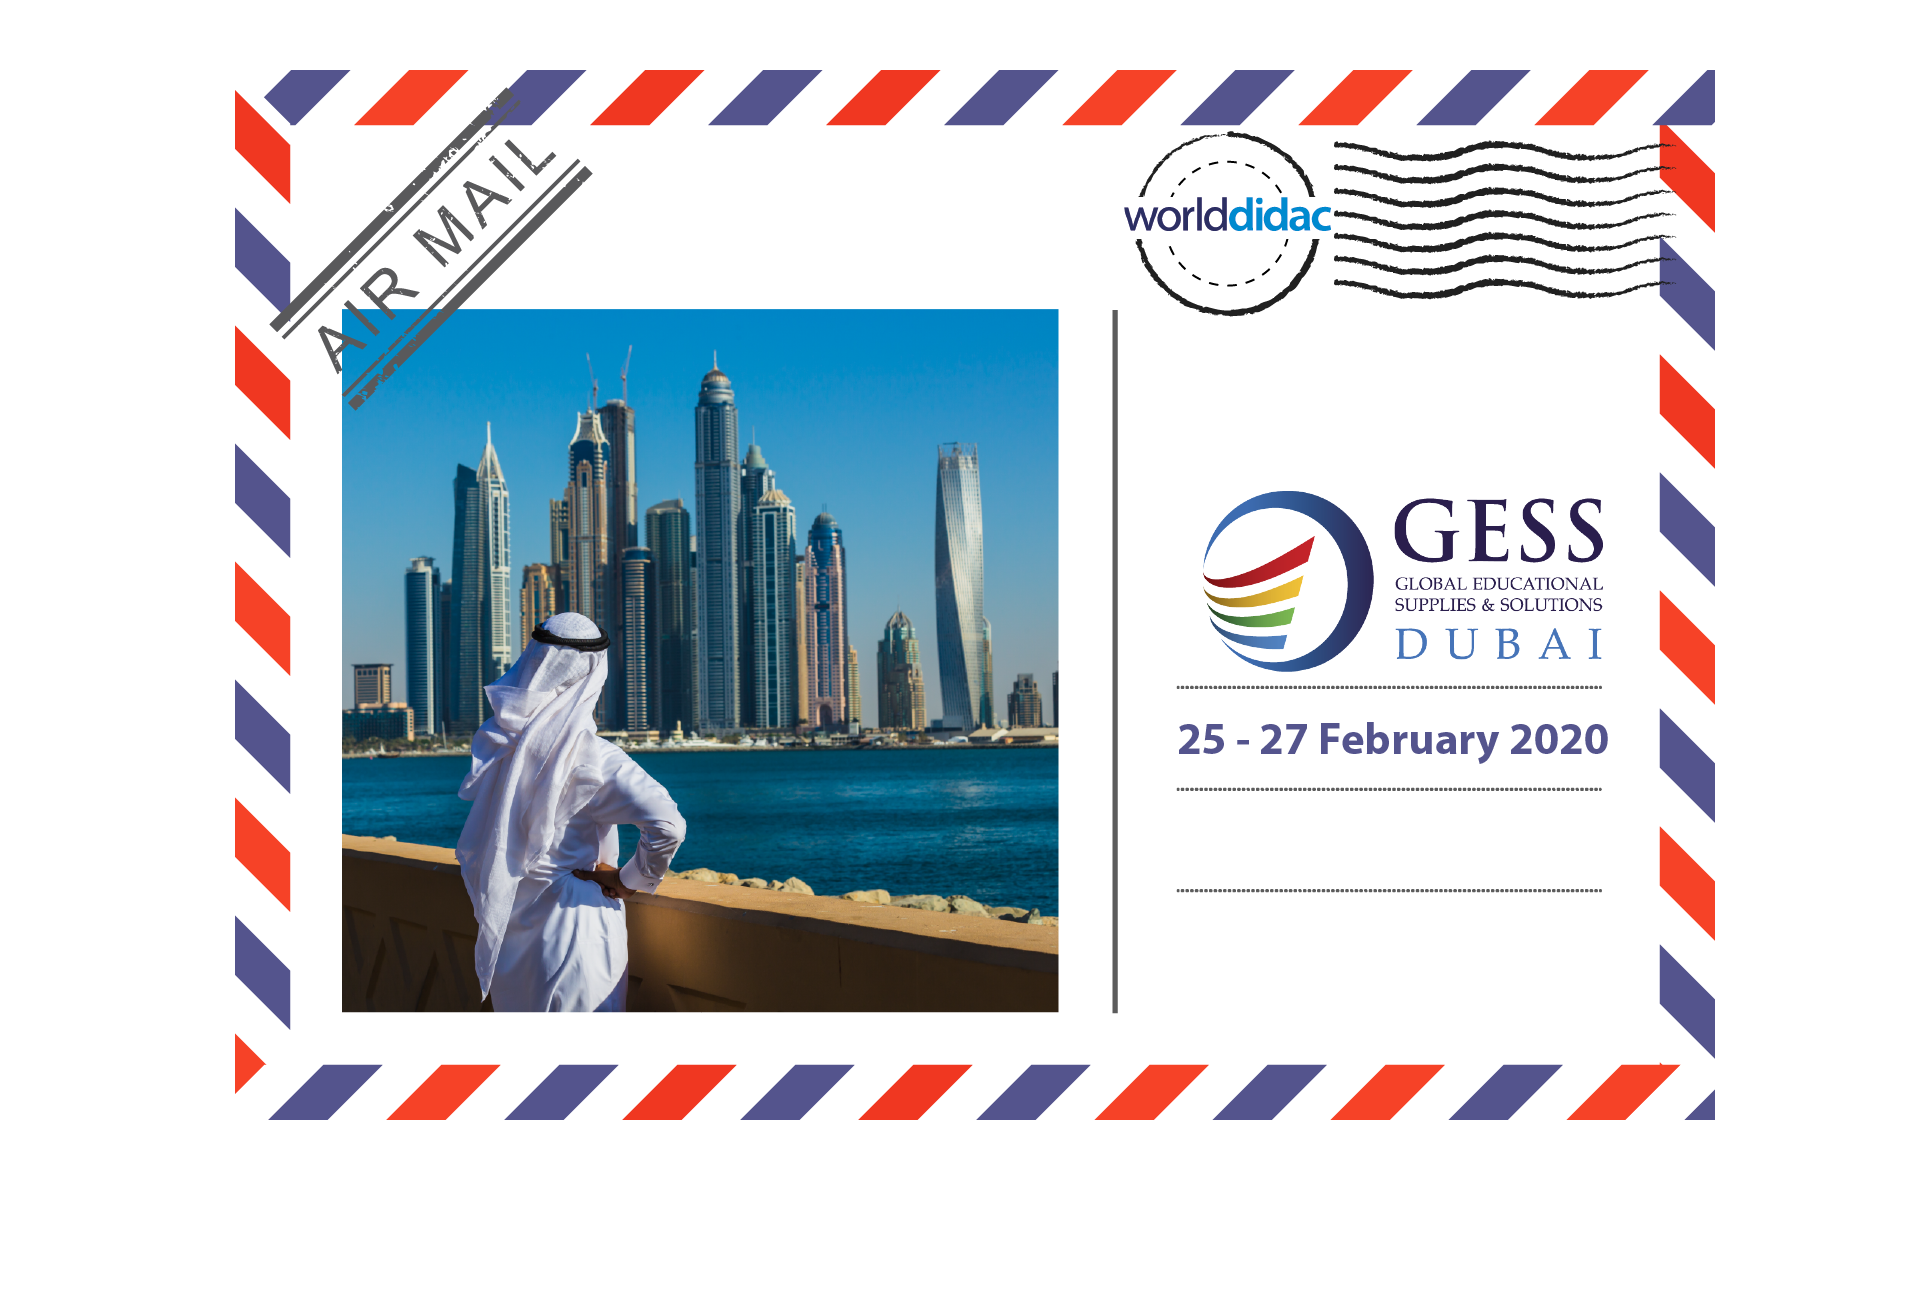 Air Mail GESS Dubai -logo and skyline of Dubai